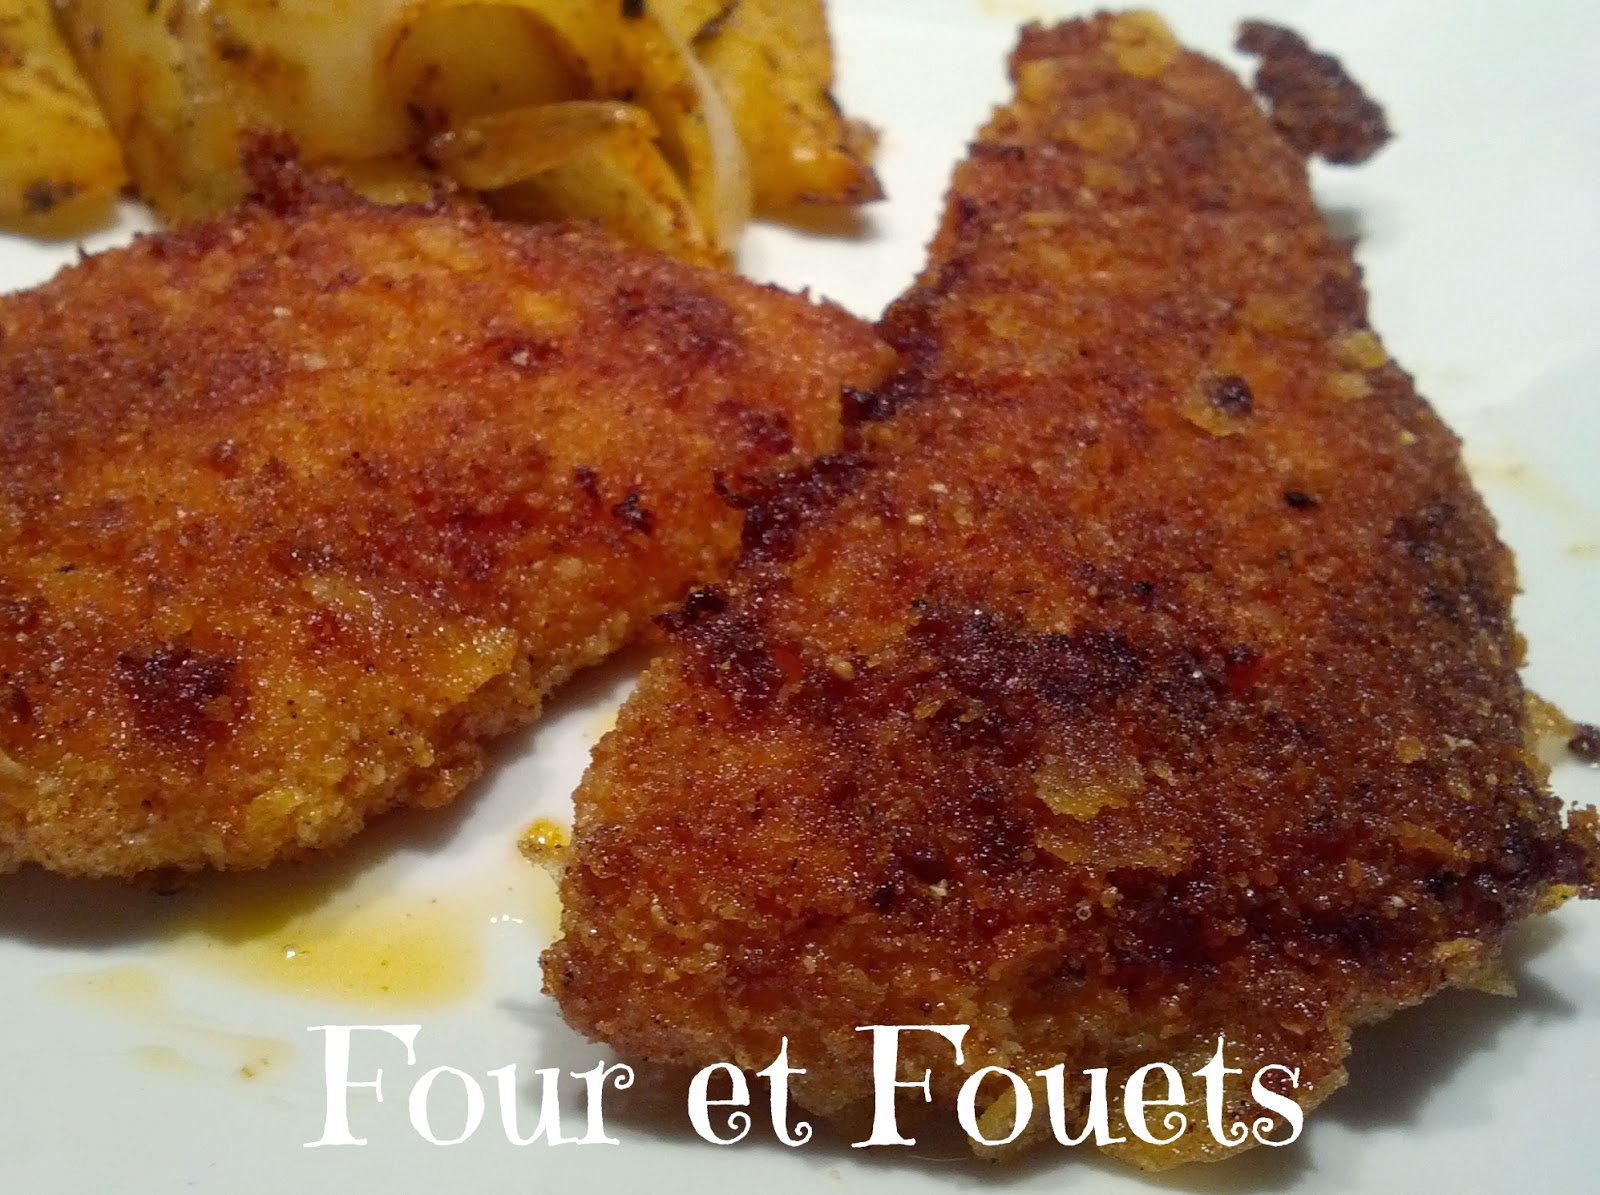 Four et fouets pour sara pangasius pan style fish 39 n for Fish n style